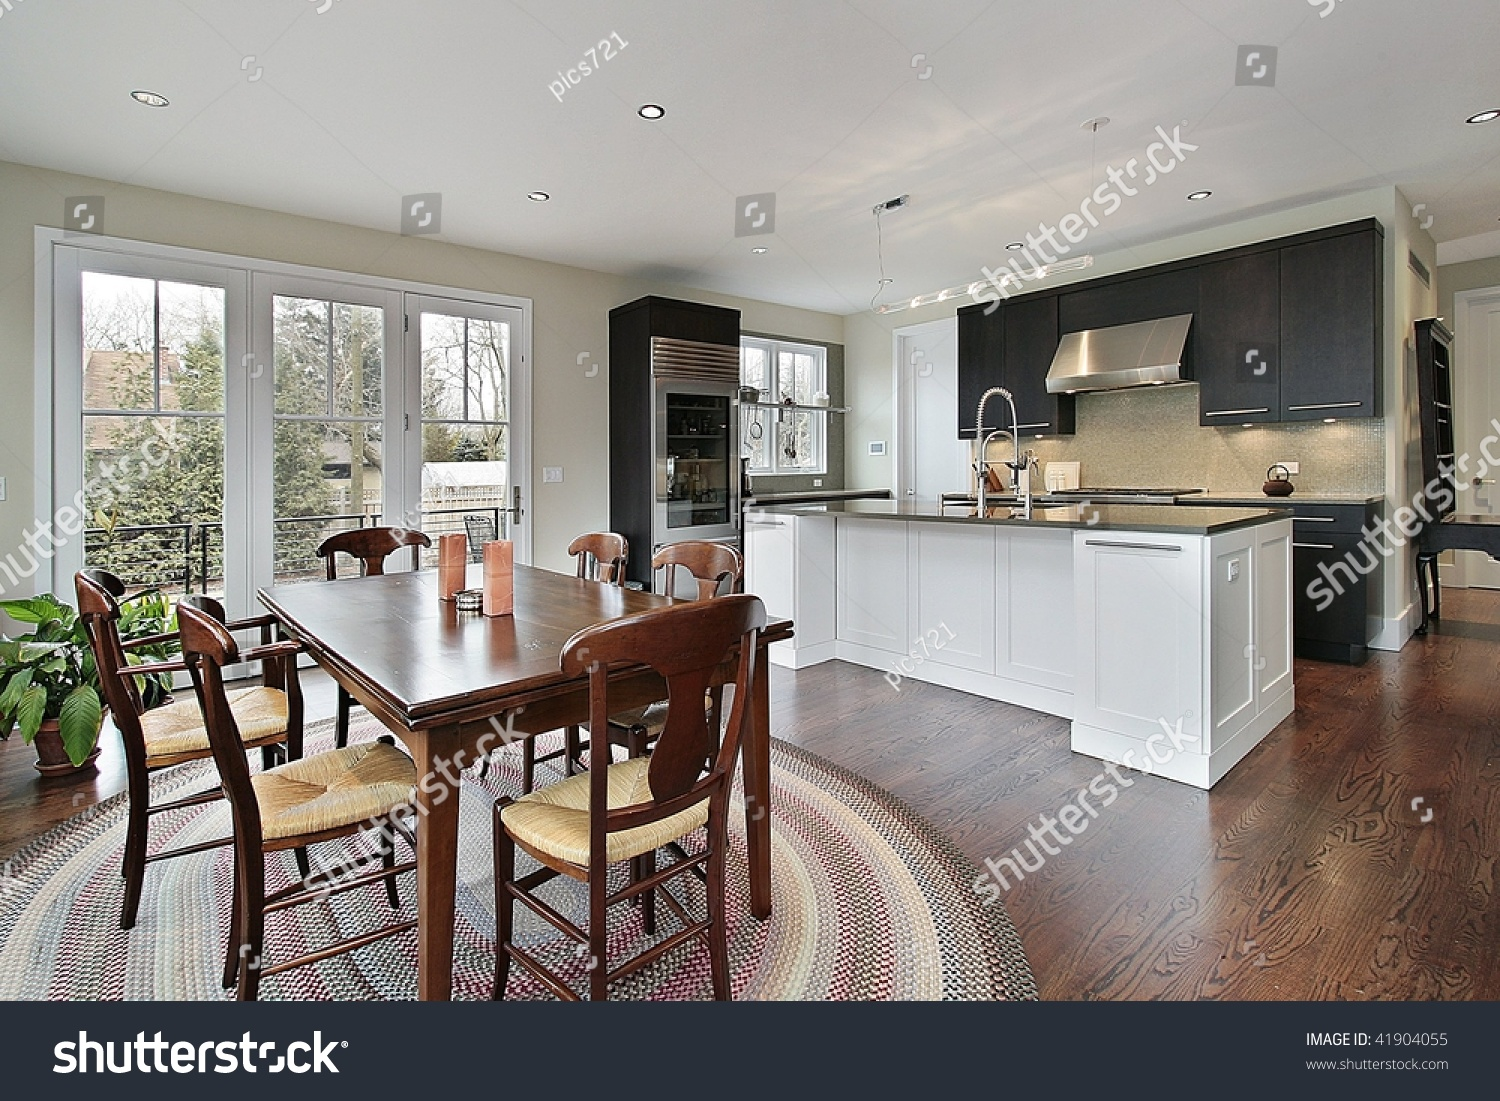 Kitchen and eating area in suburban home | EZ Canvas on kitchen design ides, kitchen design li, kitchen design clean, kitchen design ri, kitchen design model, kitchen design za, kitchen design ad, kitchen design uk, kitchen design wall, kitchen design template, kitchen design pk, kitchen design nice, kitchen design nz, kitchen design bd, kitchen design pr, kitchen design md, kitchen design nh, kitchen design mi, kitchen design ph, kitchen design apl,